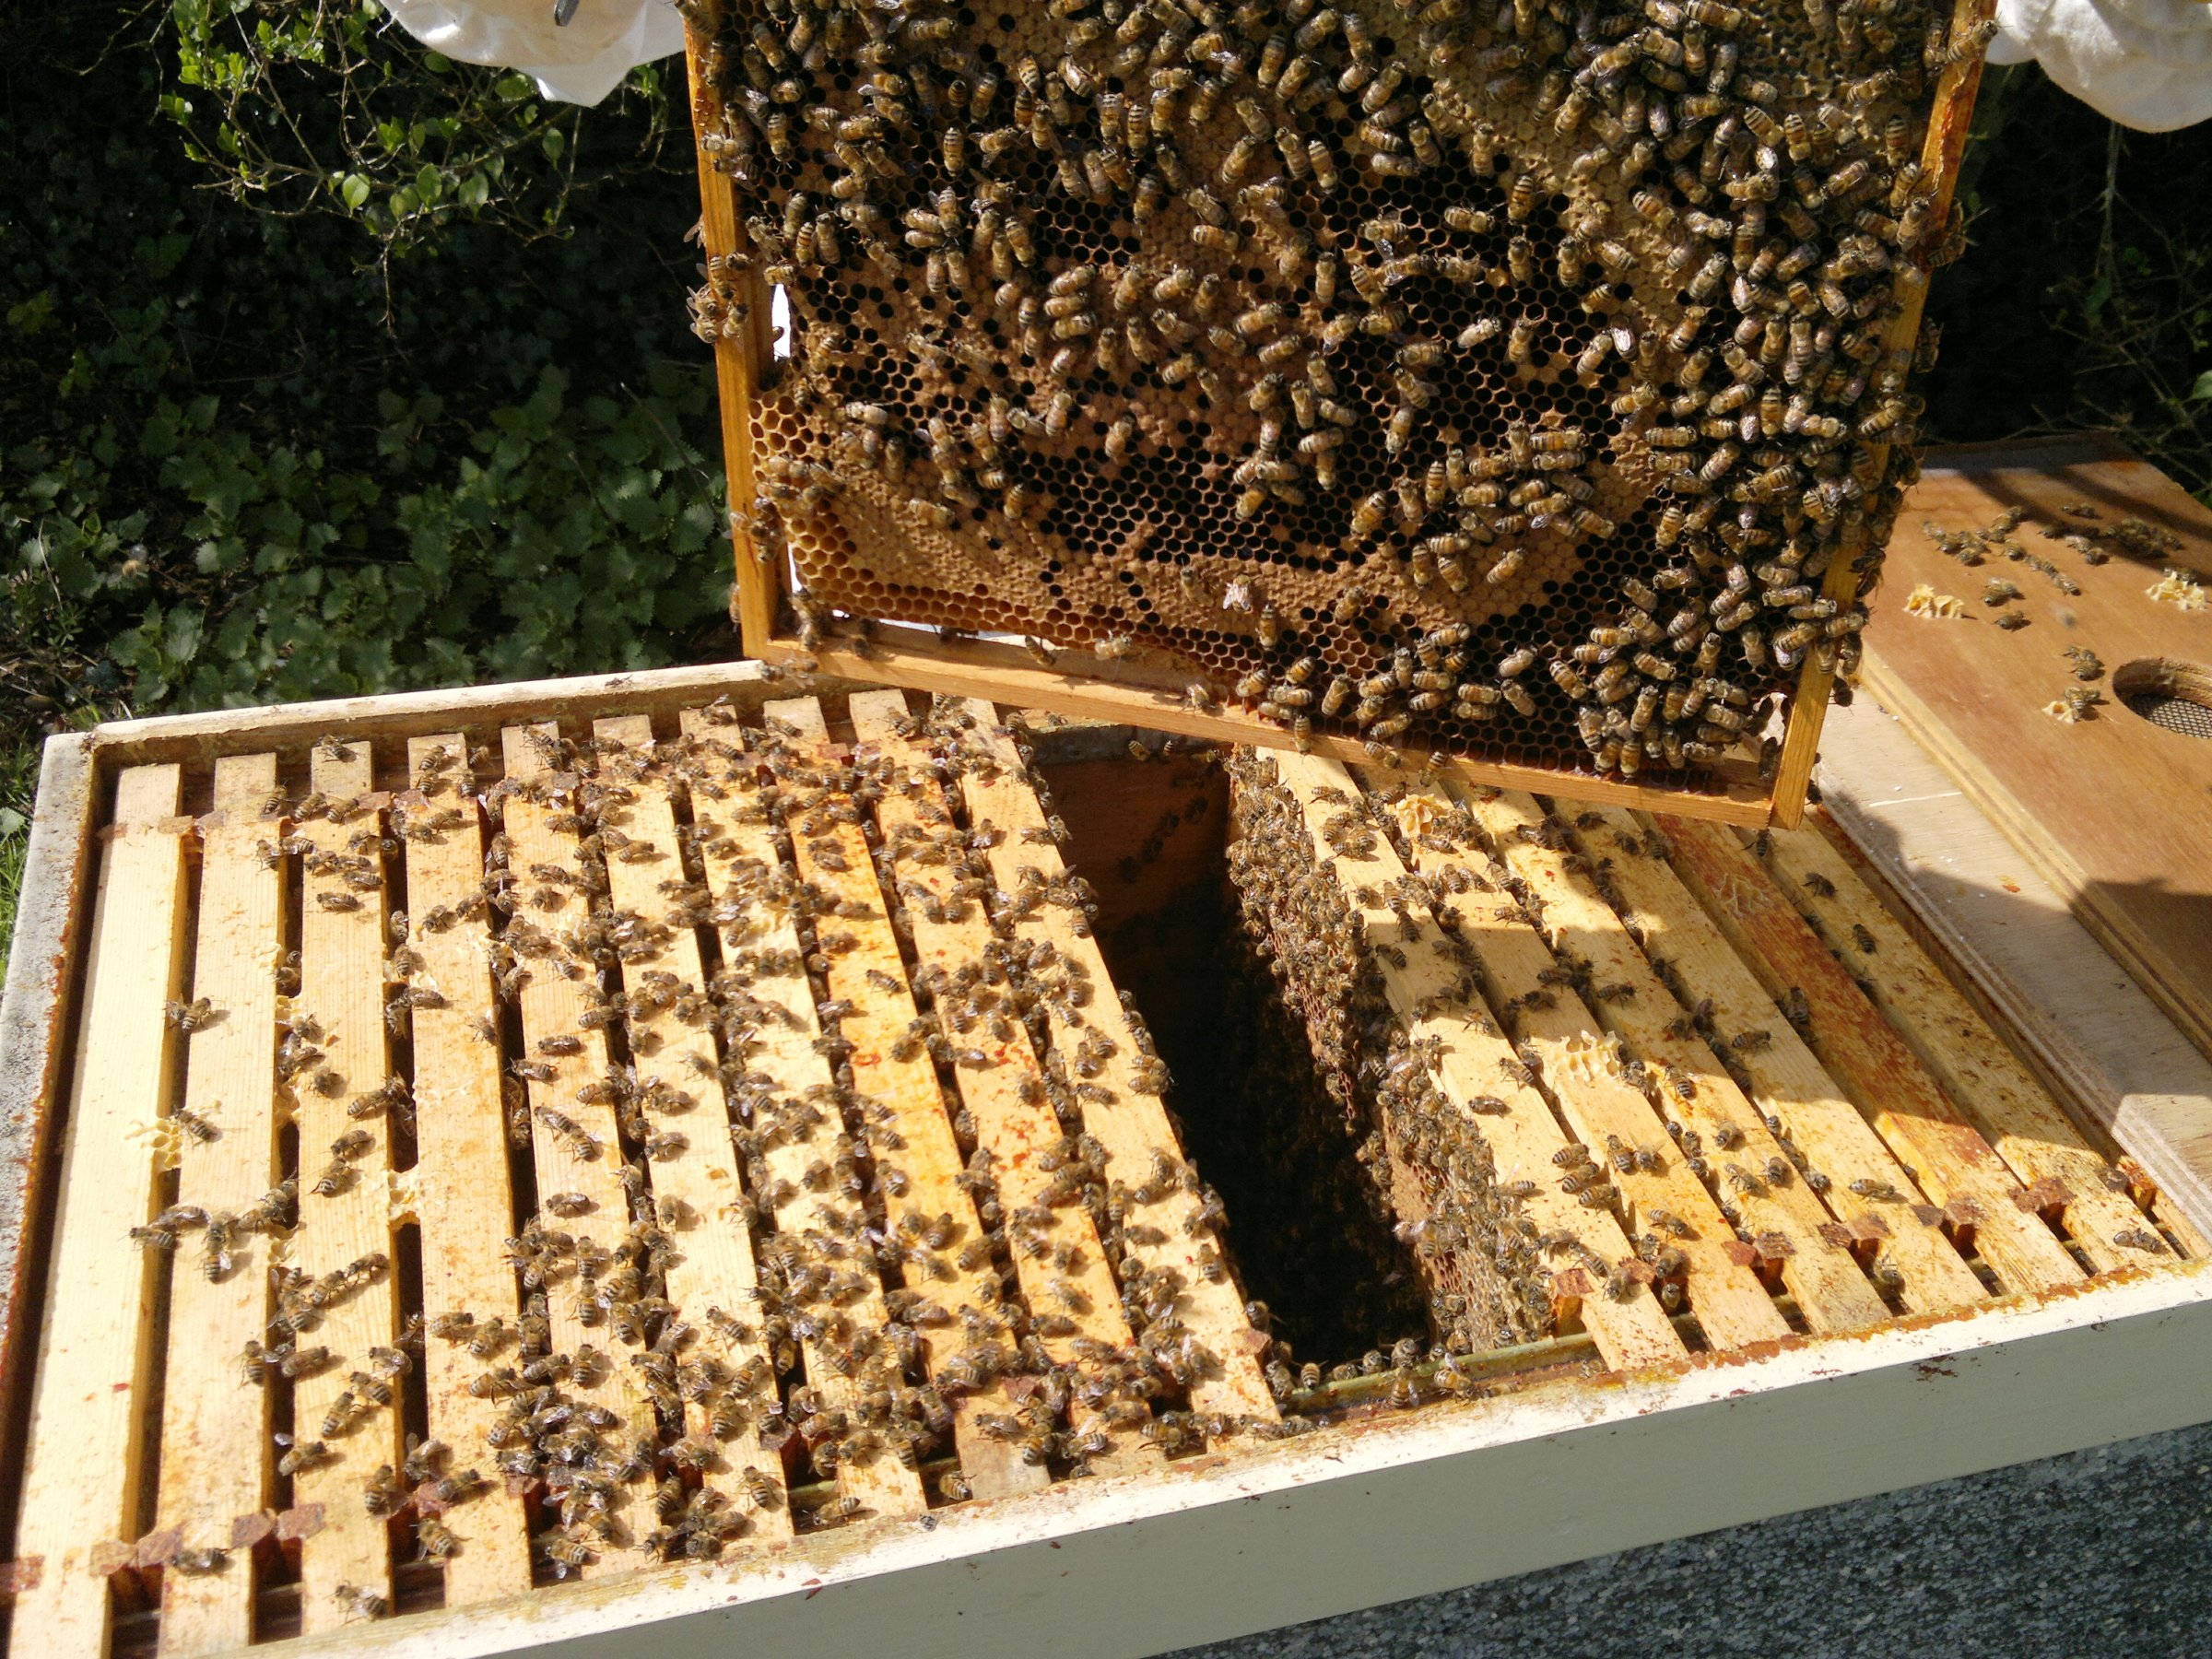 Lots of bees and lots of brood